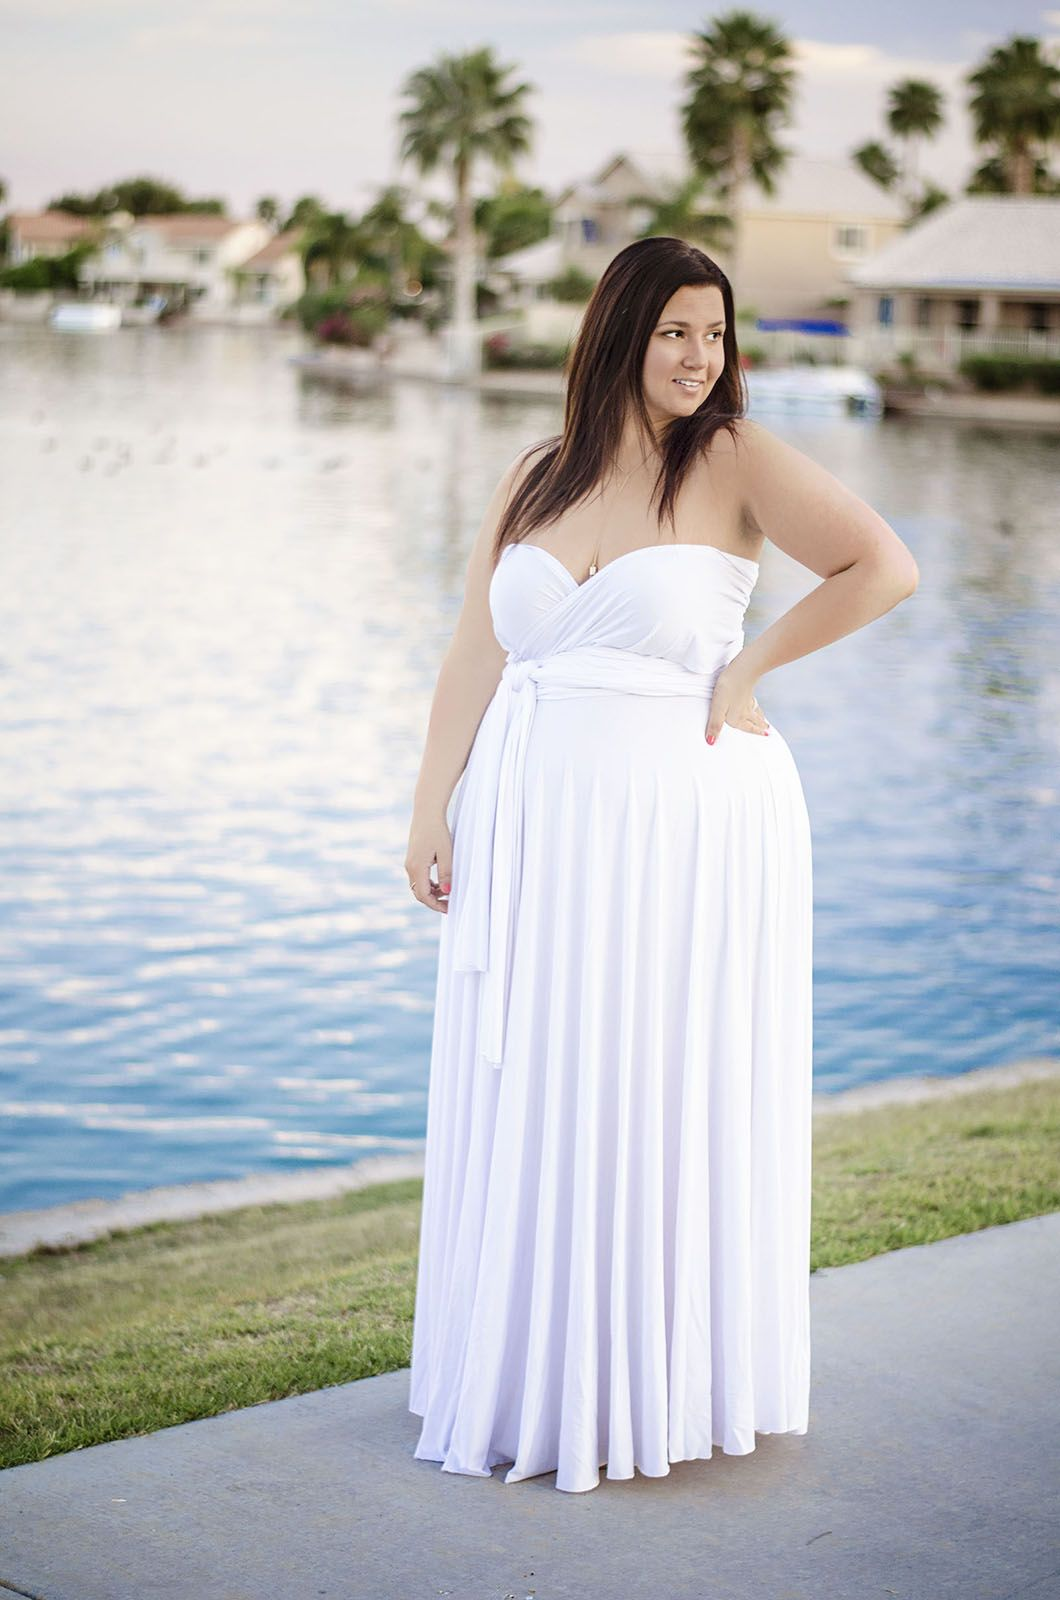 Plus Size Casual Wedding Dress Frodofullring